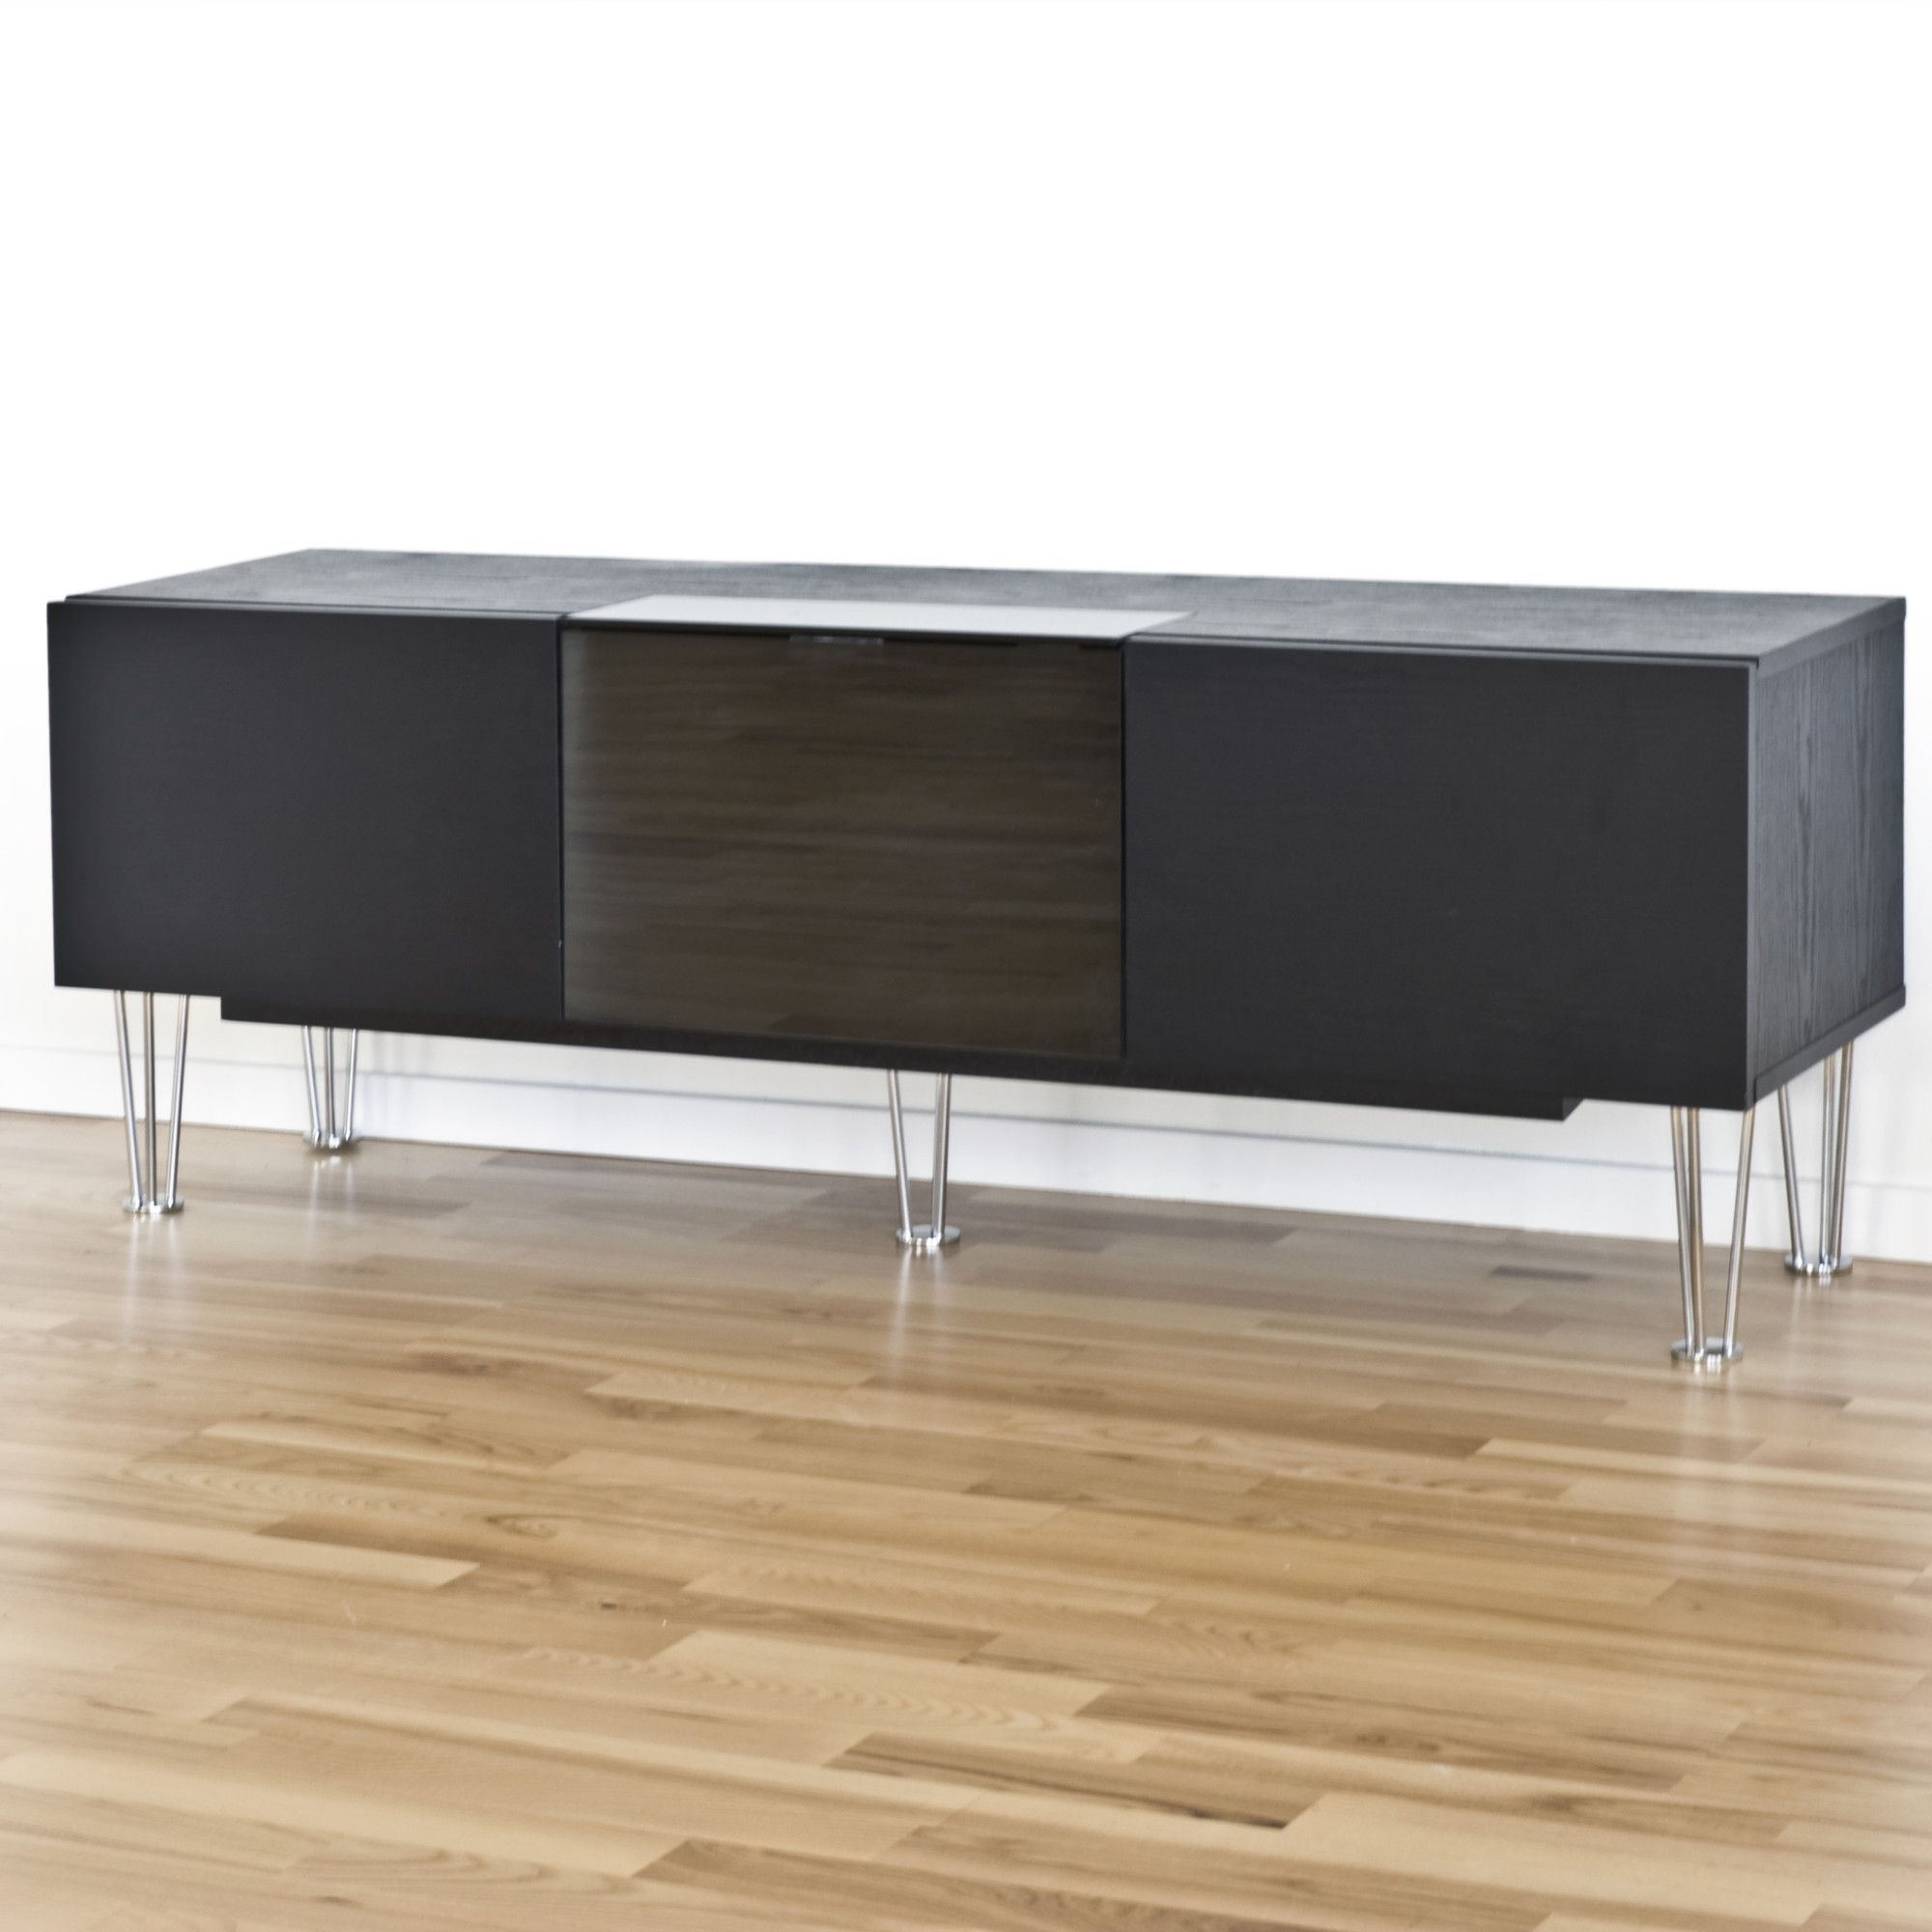 RGE Watt Multi-Media TV Storage and Display Unit - Foil Black Oak Structure at Tesco Direct